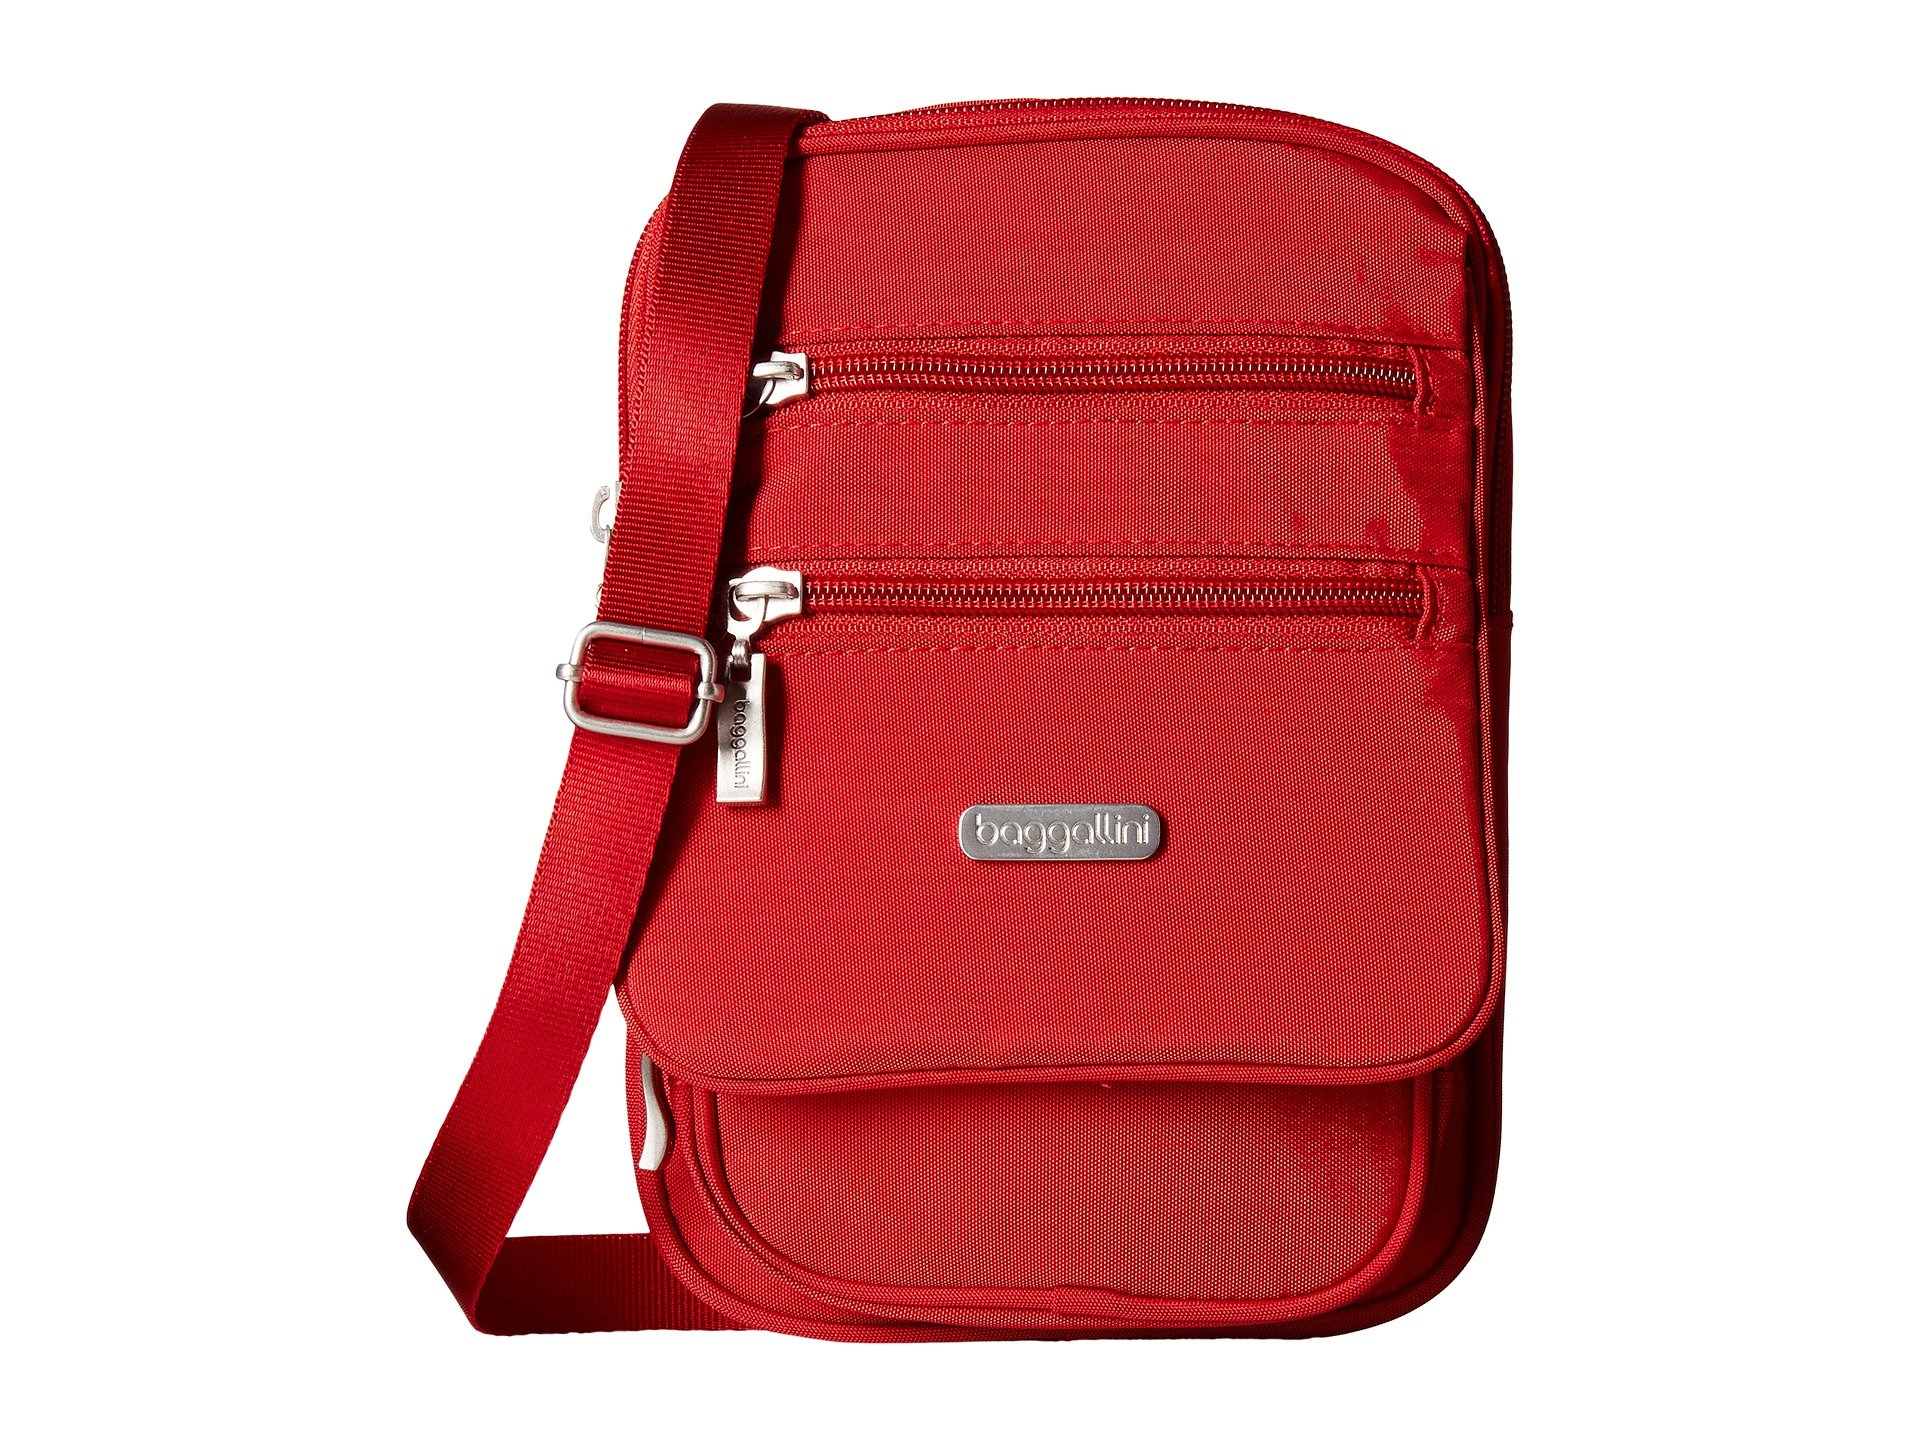 Journey Apple Crossbody Baggallini Baggallini Crossbody Journey Baggallini Apple wSggfn7X